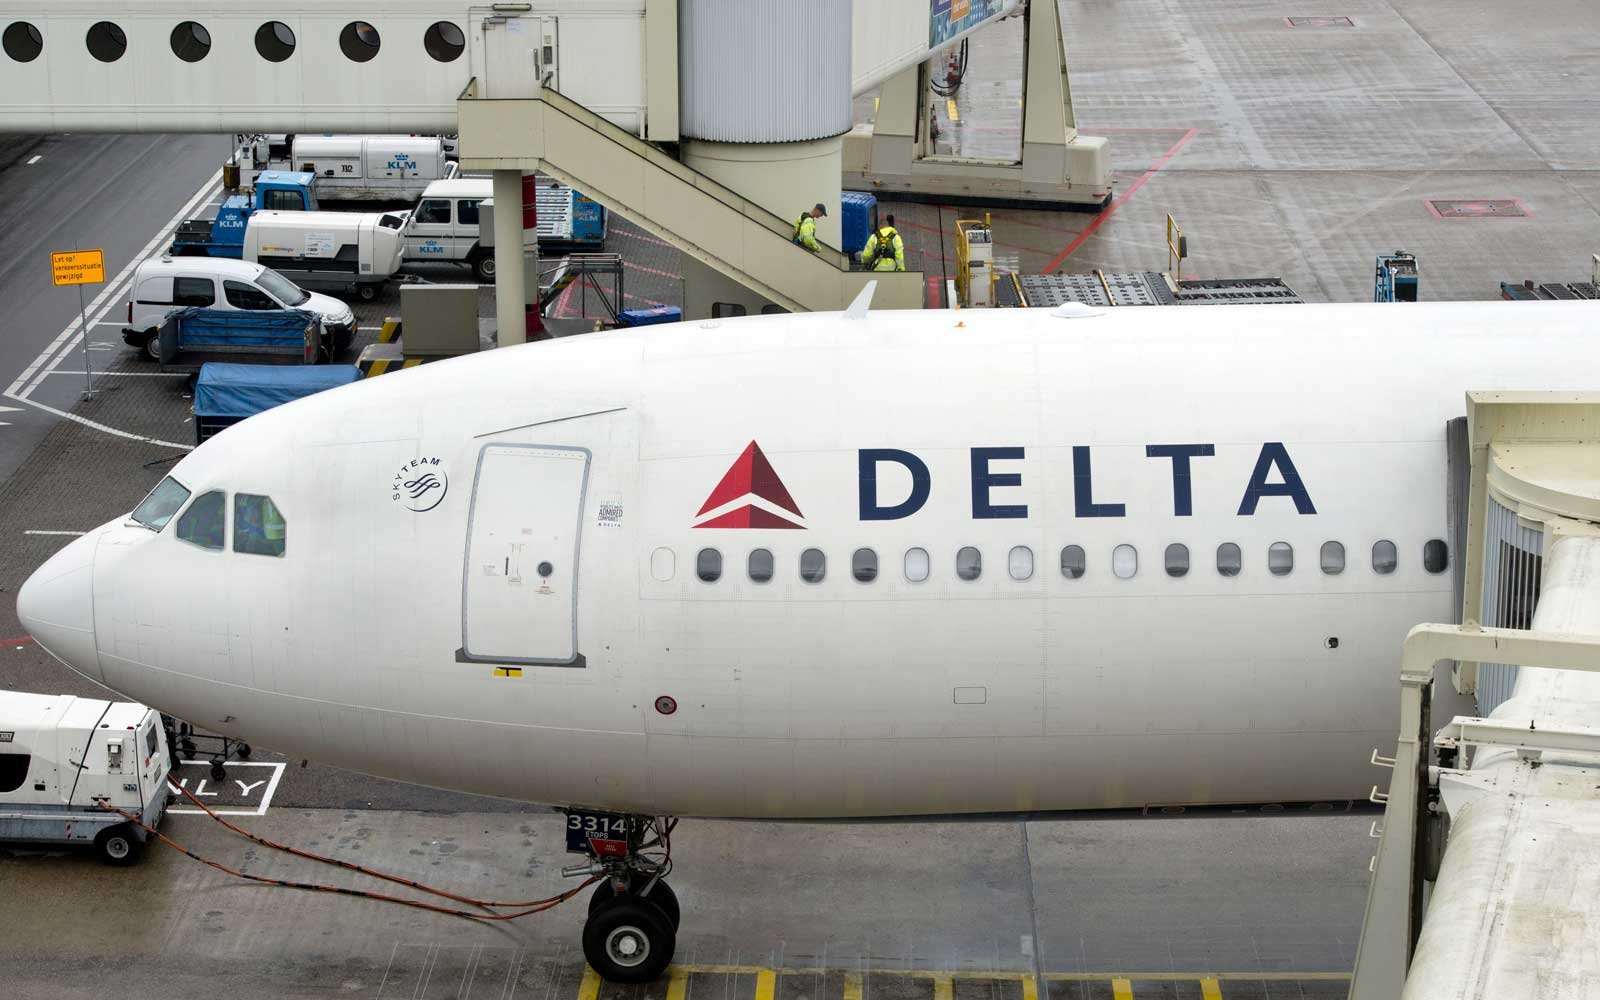 Delta Airlines airplane at gate